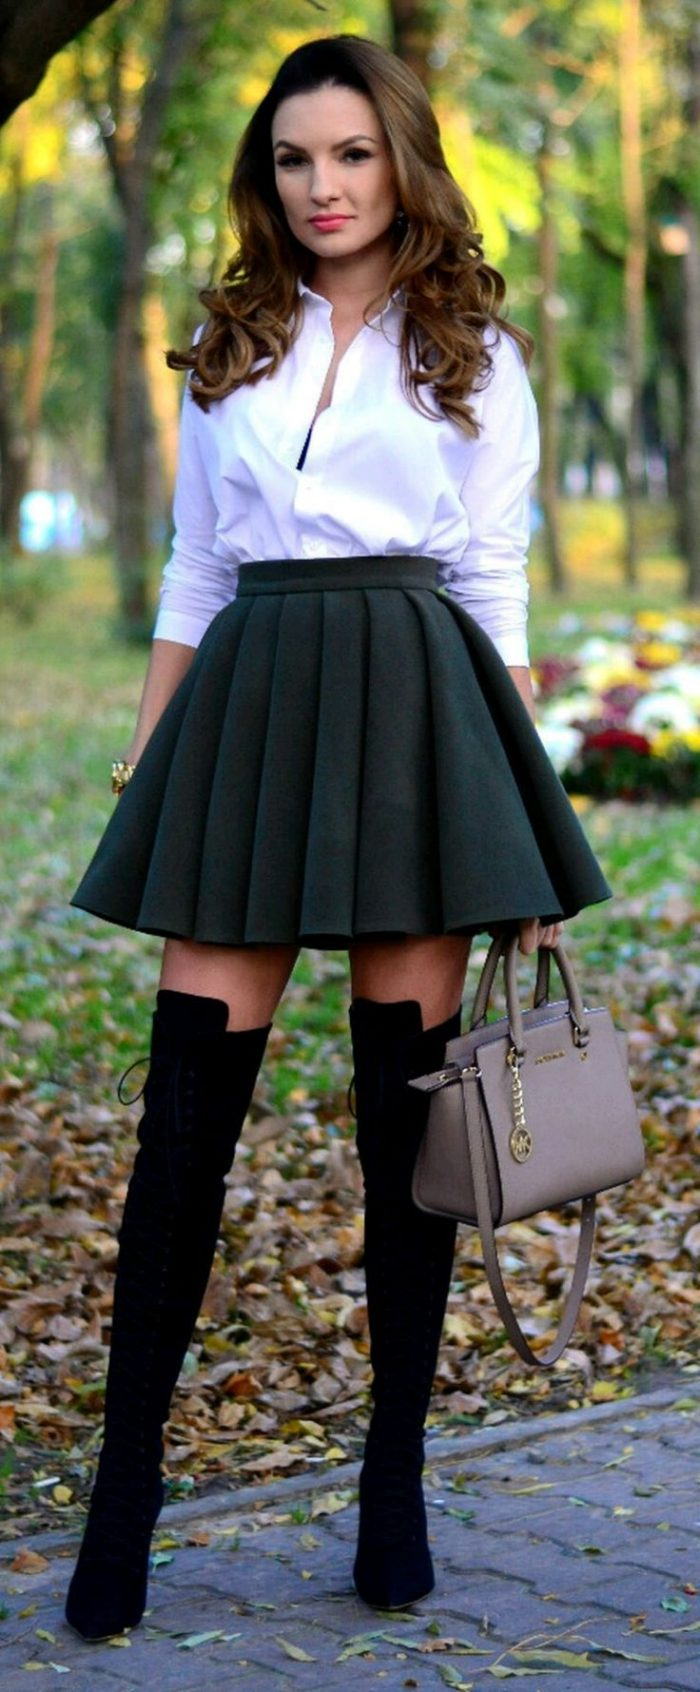 Skater Skirts That Look Gorgeous 2019